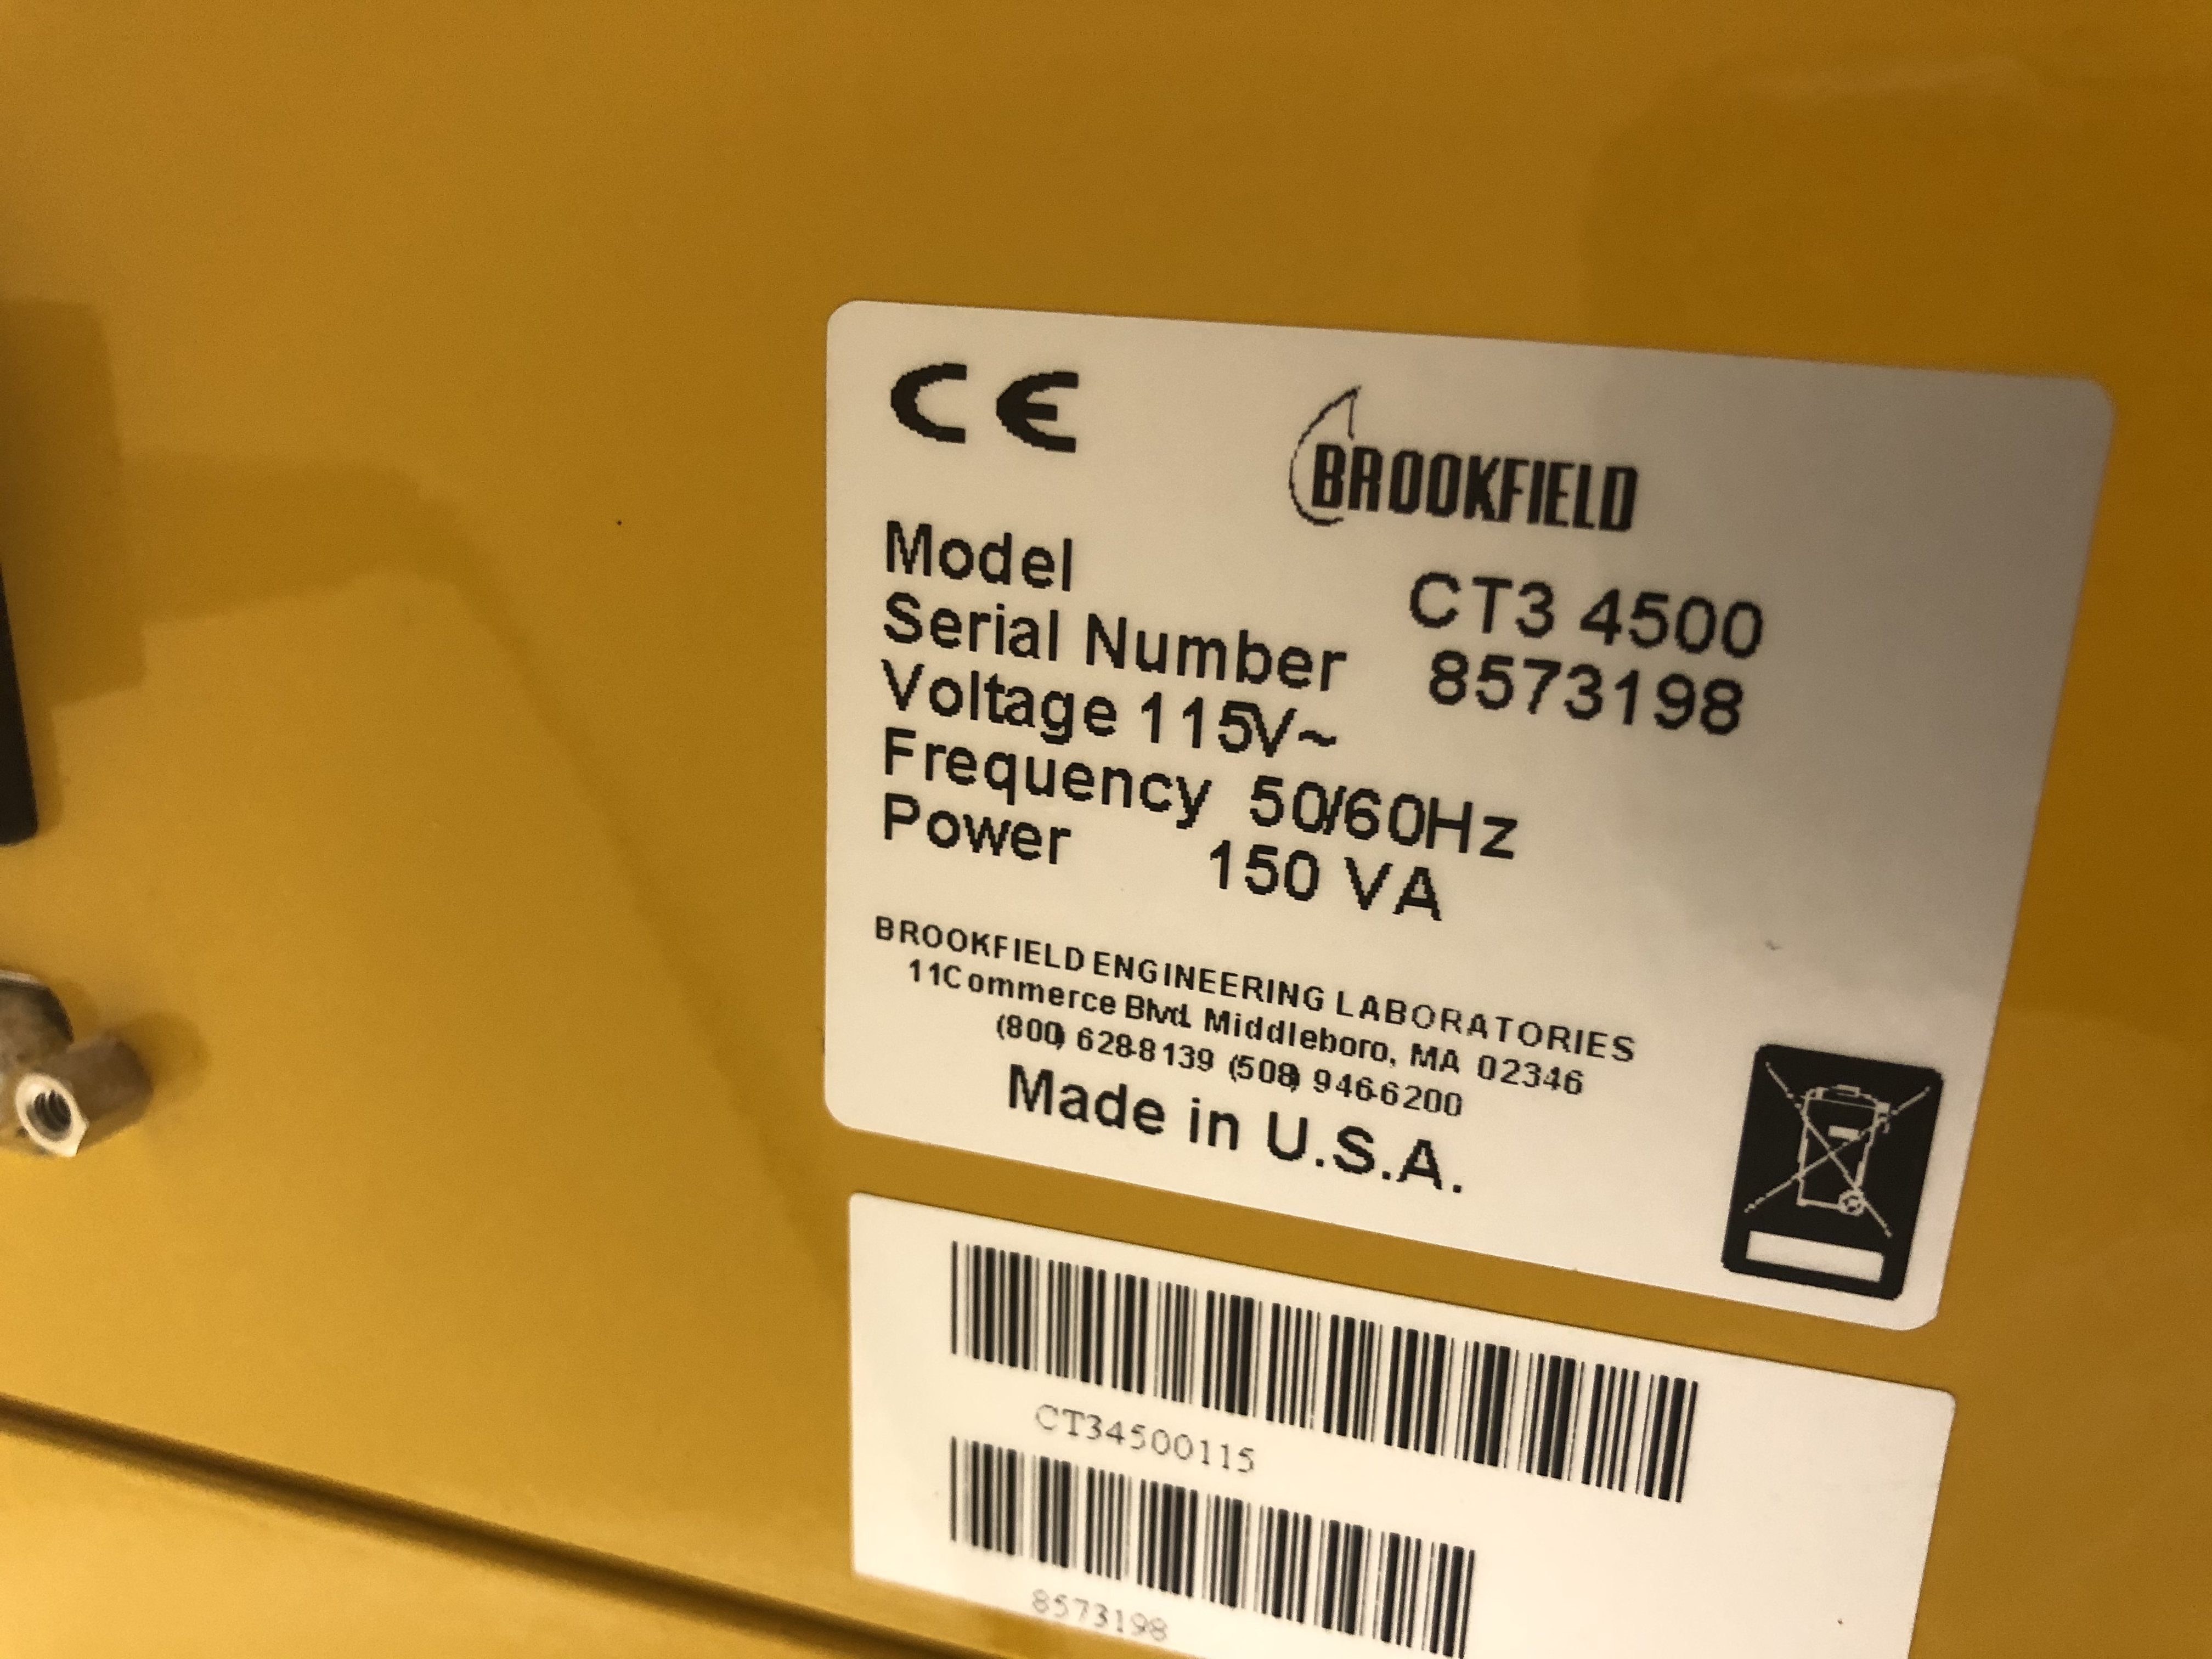 Brookfield Texture Analyzer, Model# CT3 4500, Serial# 8573198 - Image 2 of 4